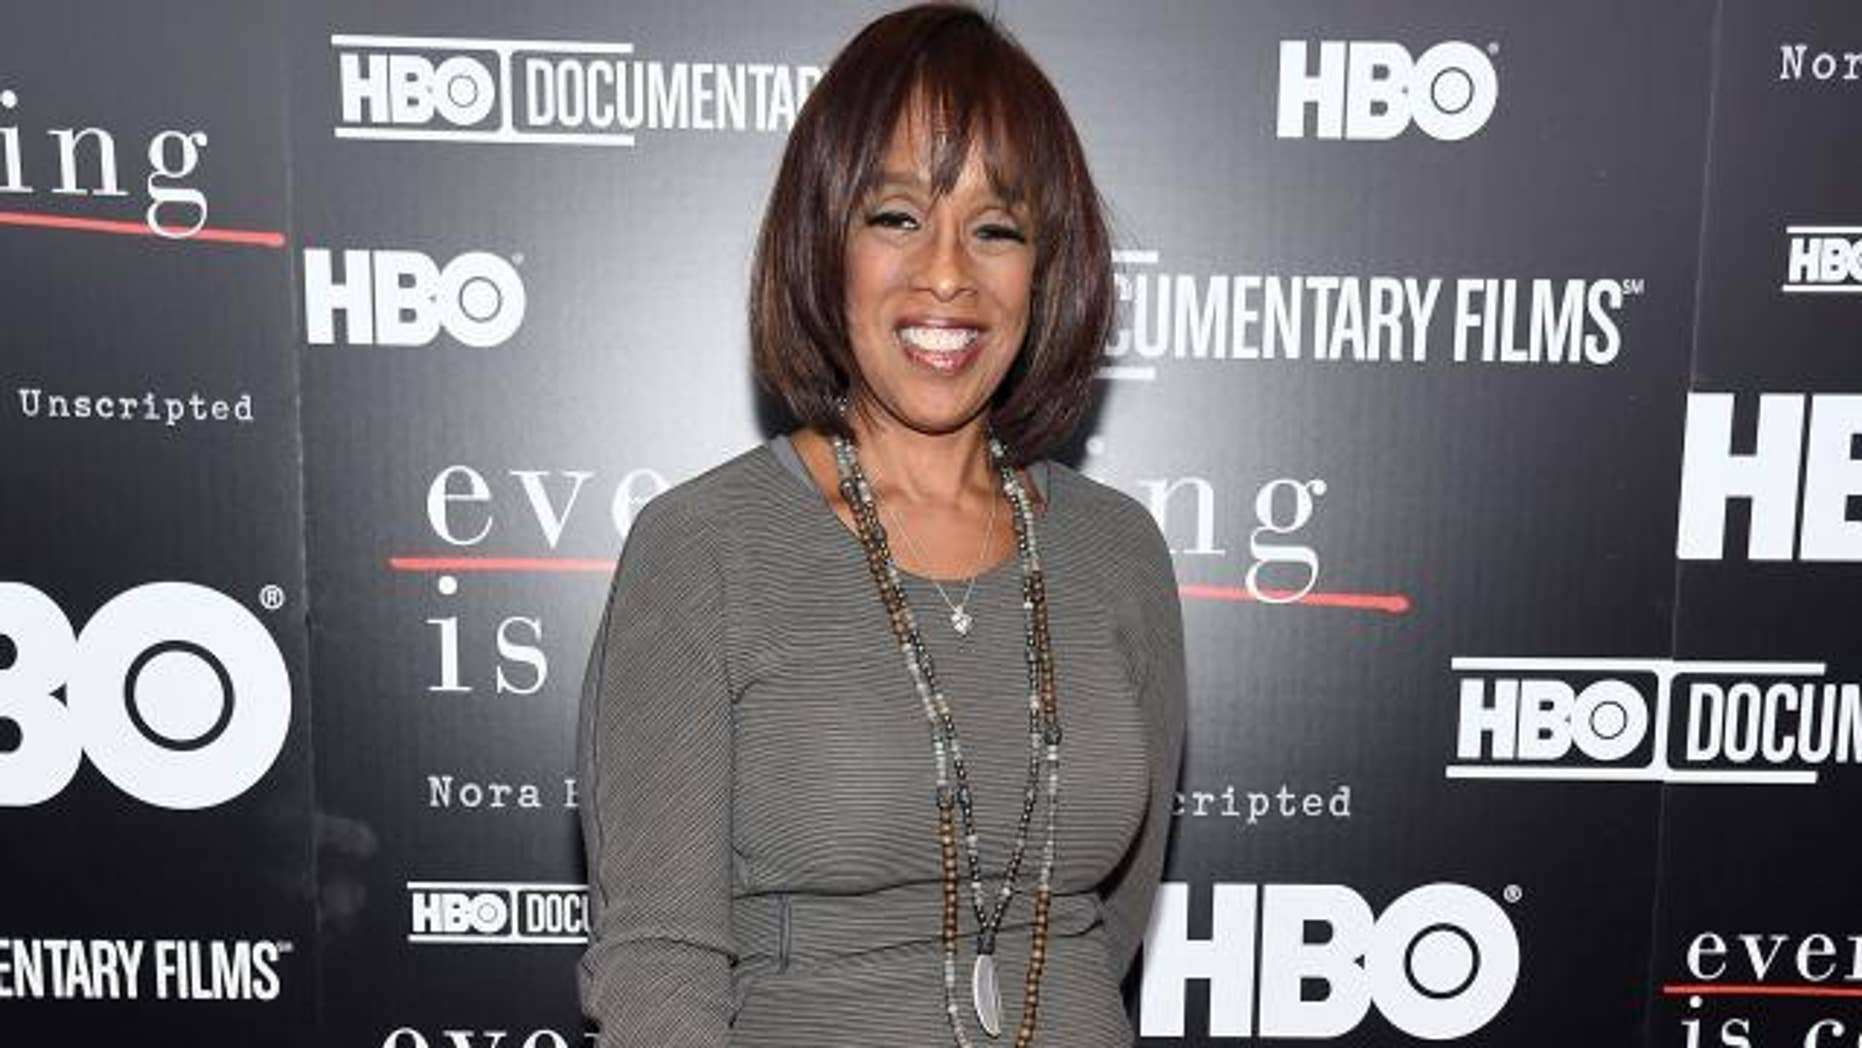 Gayle King is drawing attention for her interviewing skills just as she negotiates a new contract with CBS News